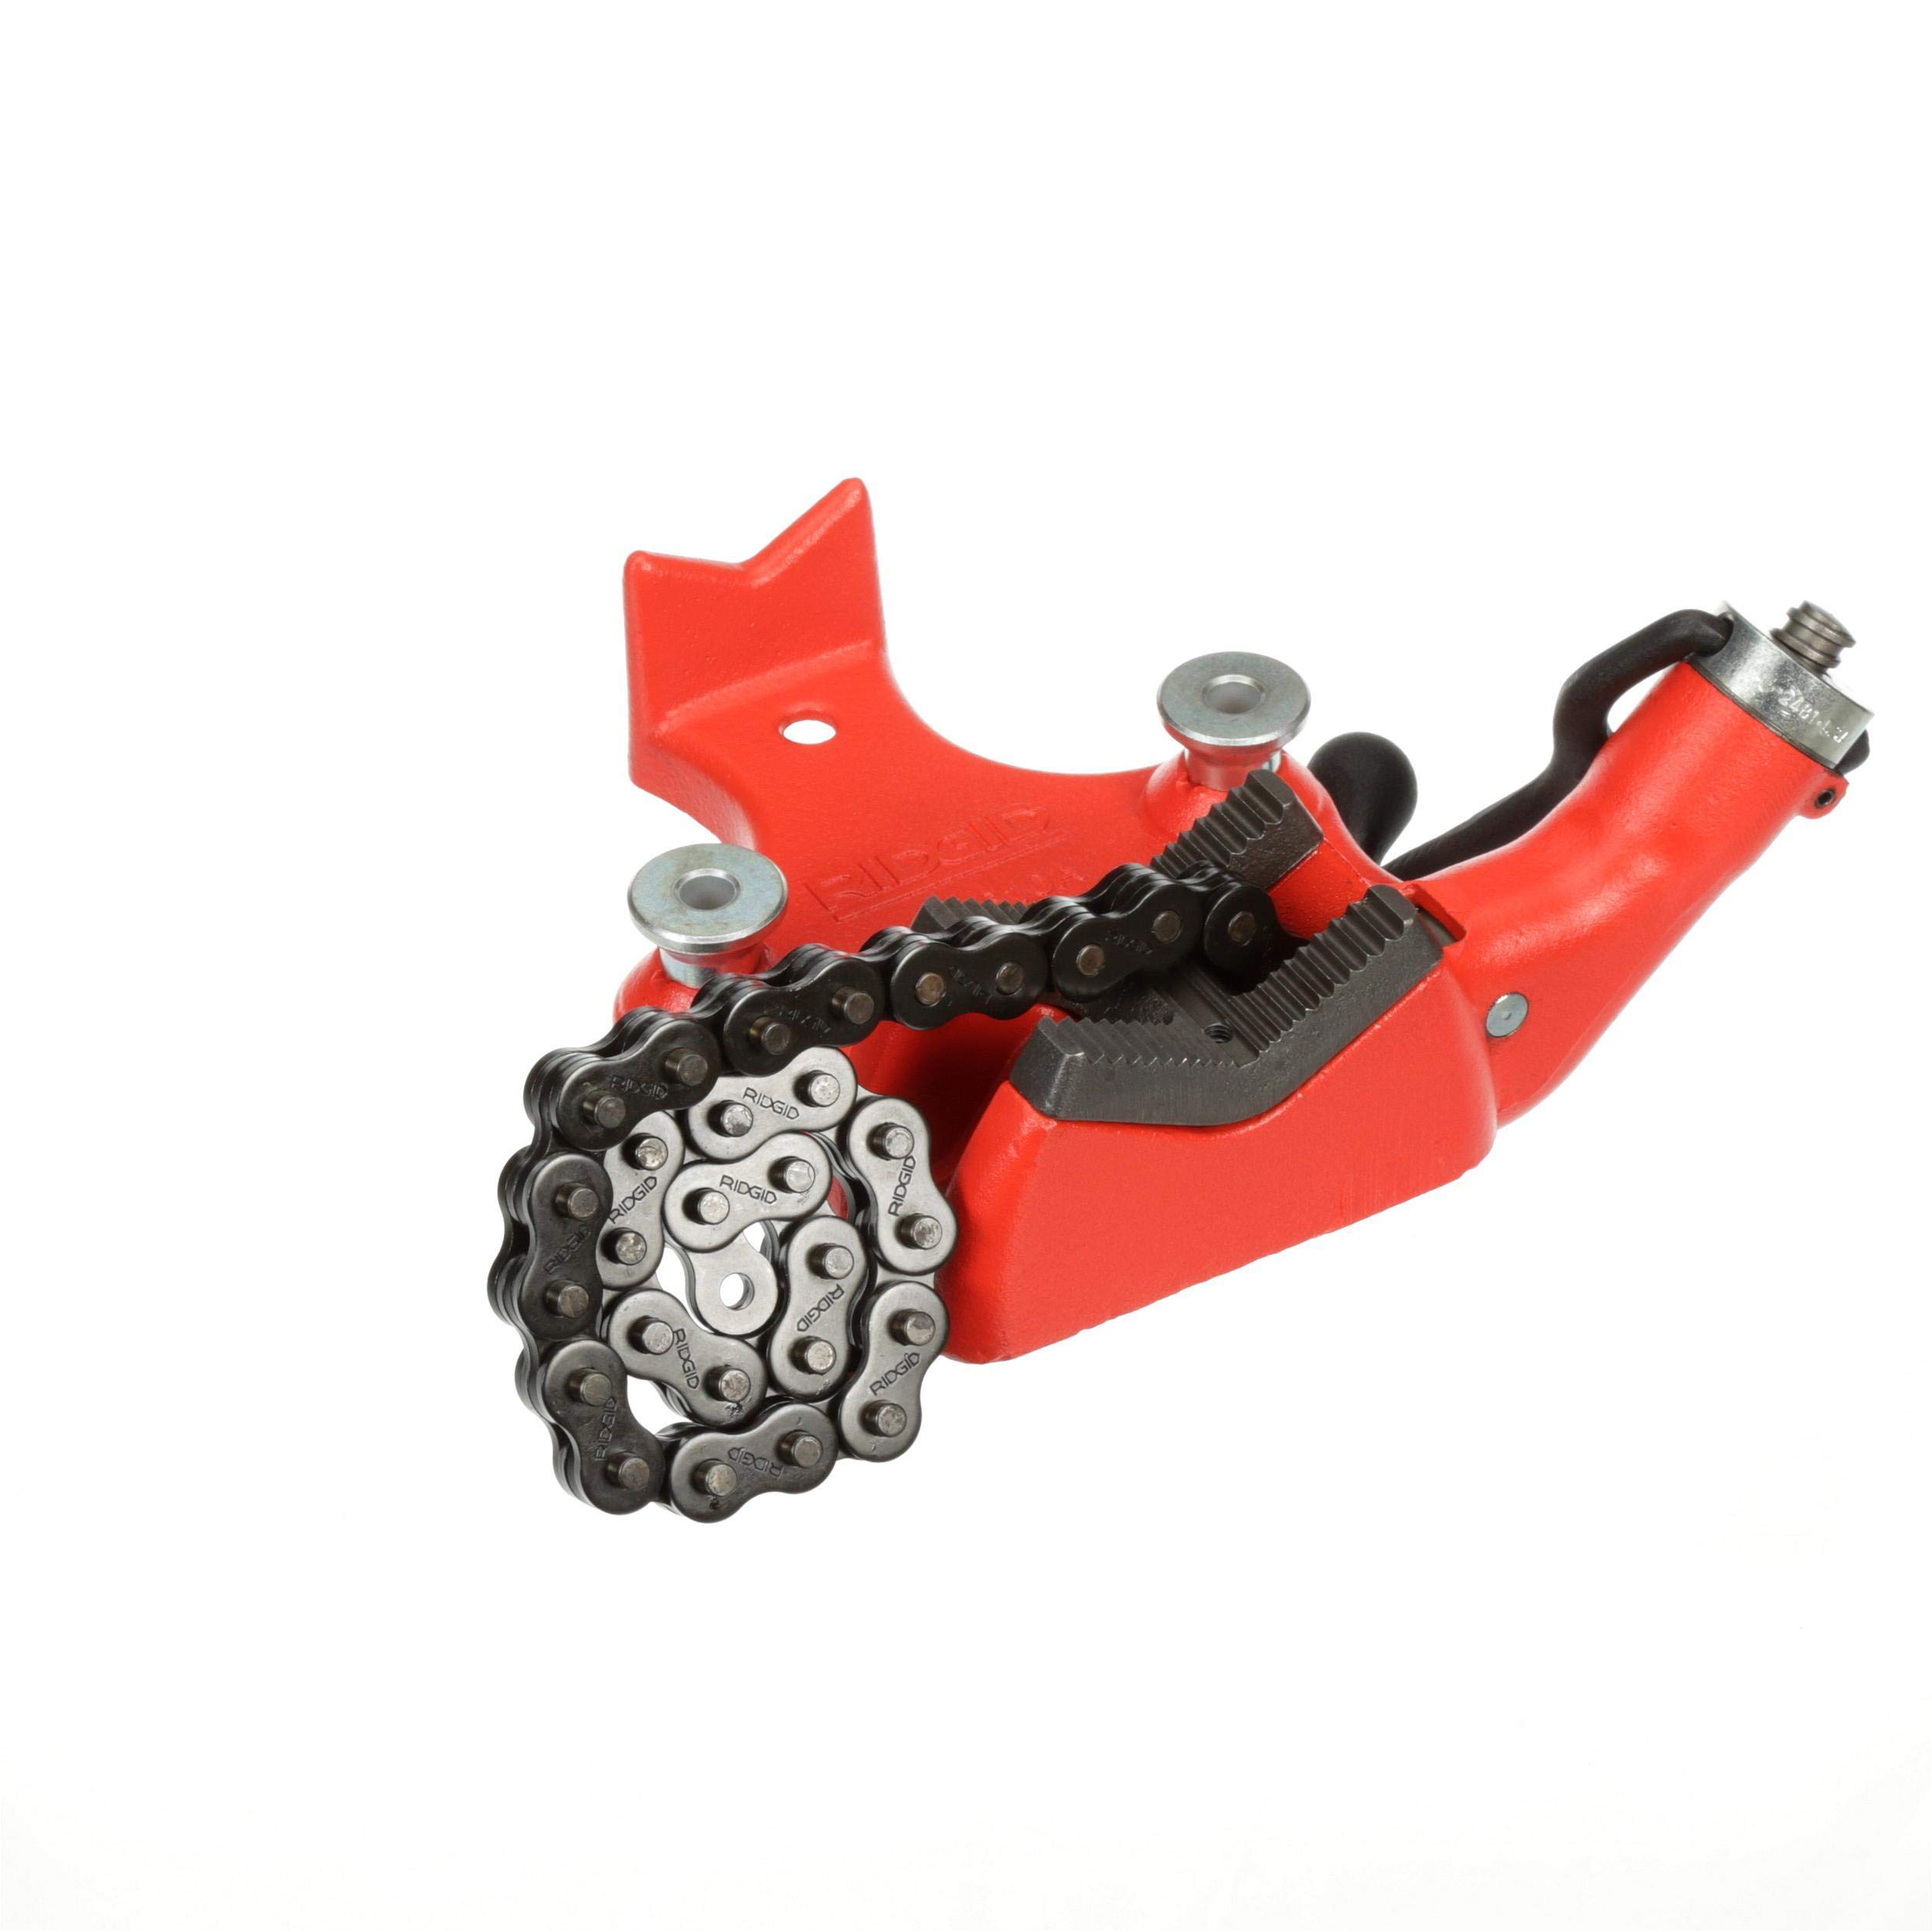 RIDGID 40210 Model BC610 Top Screw Bench Chain Vise, 1/4-inch to 6-inch Bench Vise by Ridgid